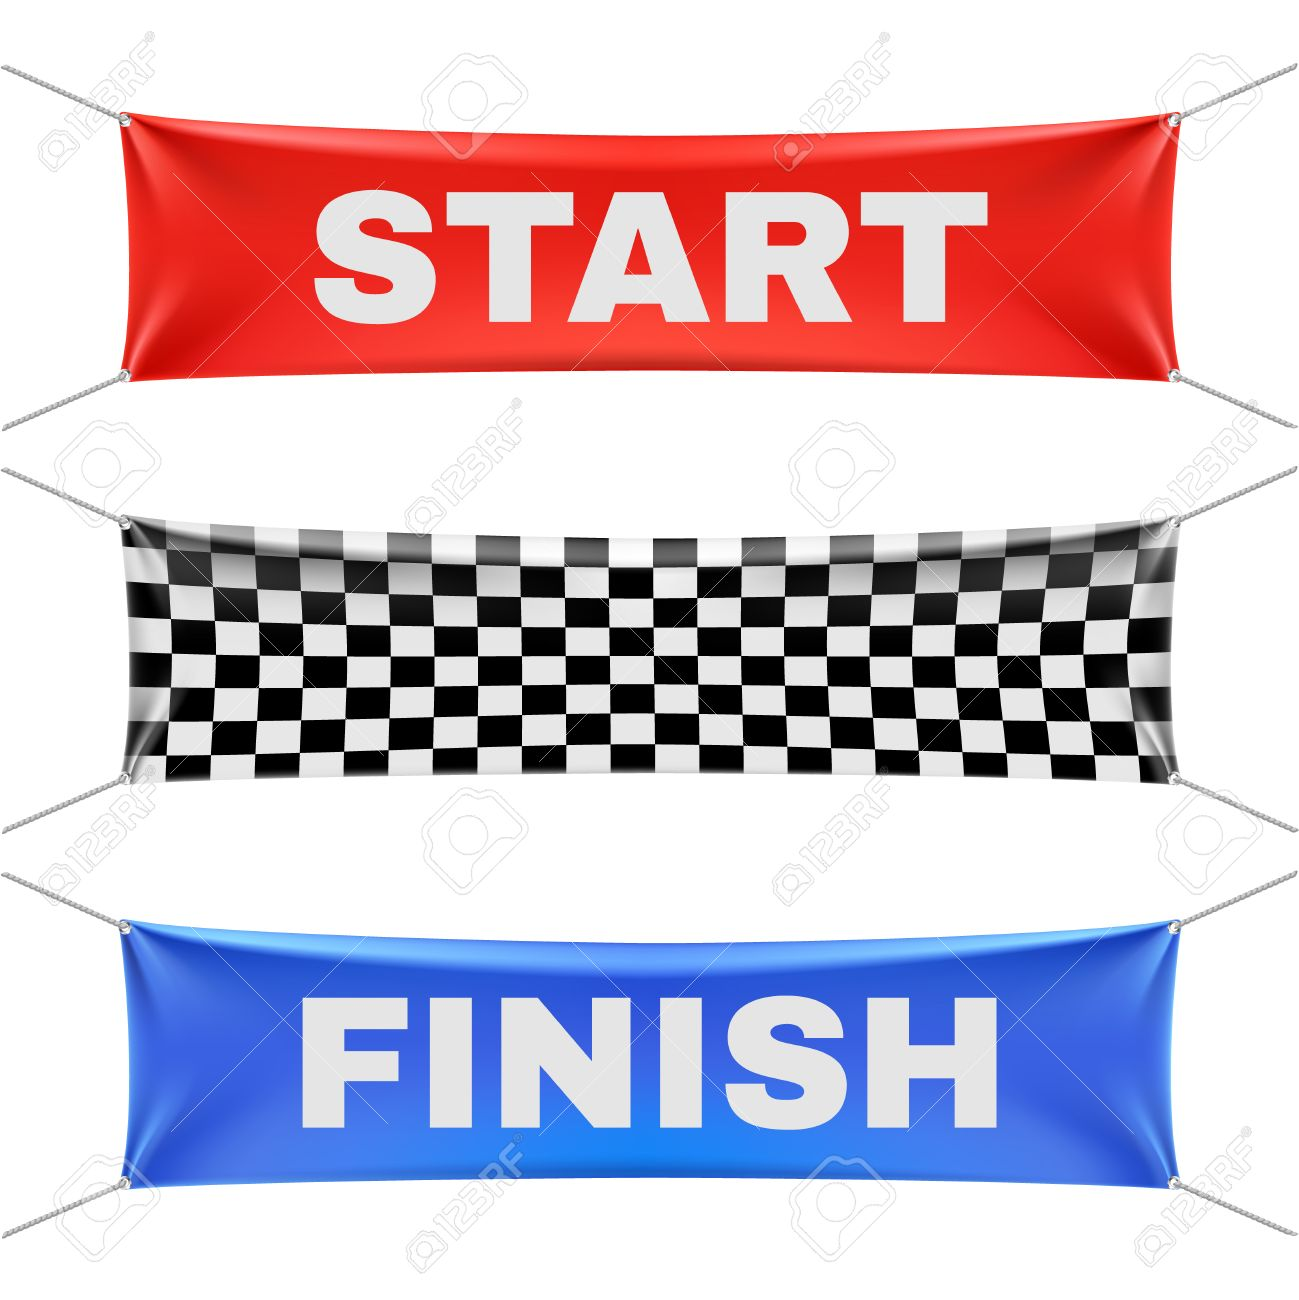 Starting Finishing And Checkered Vinyl Banners With Folds Royalty Free Cliparts Vectors And Stock Illustration Image 57405016